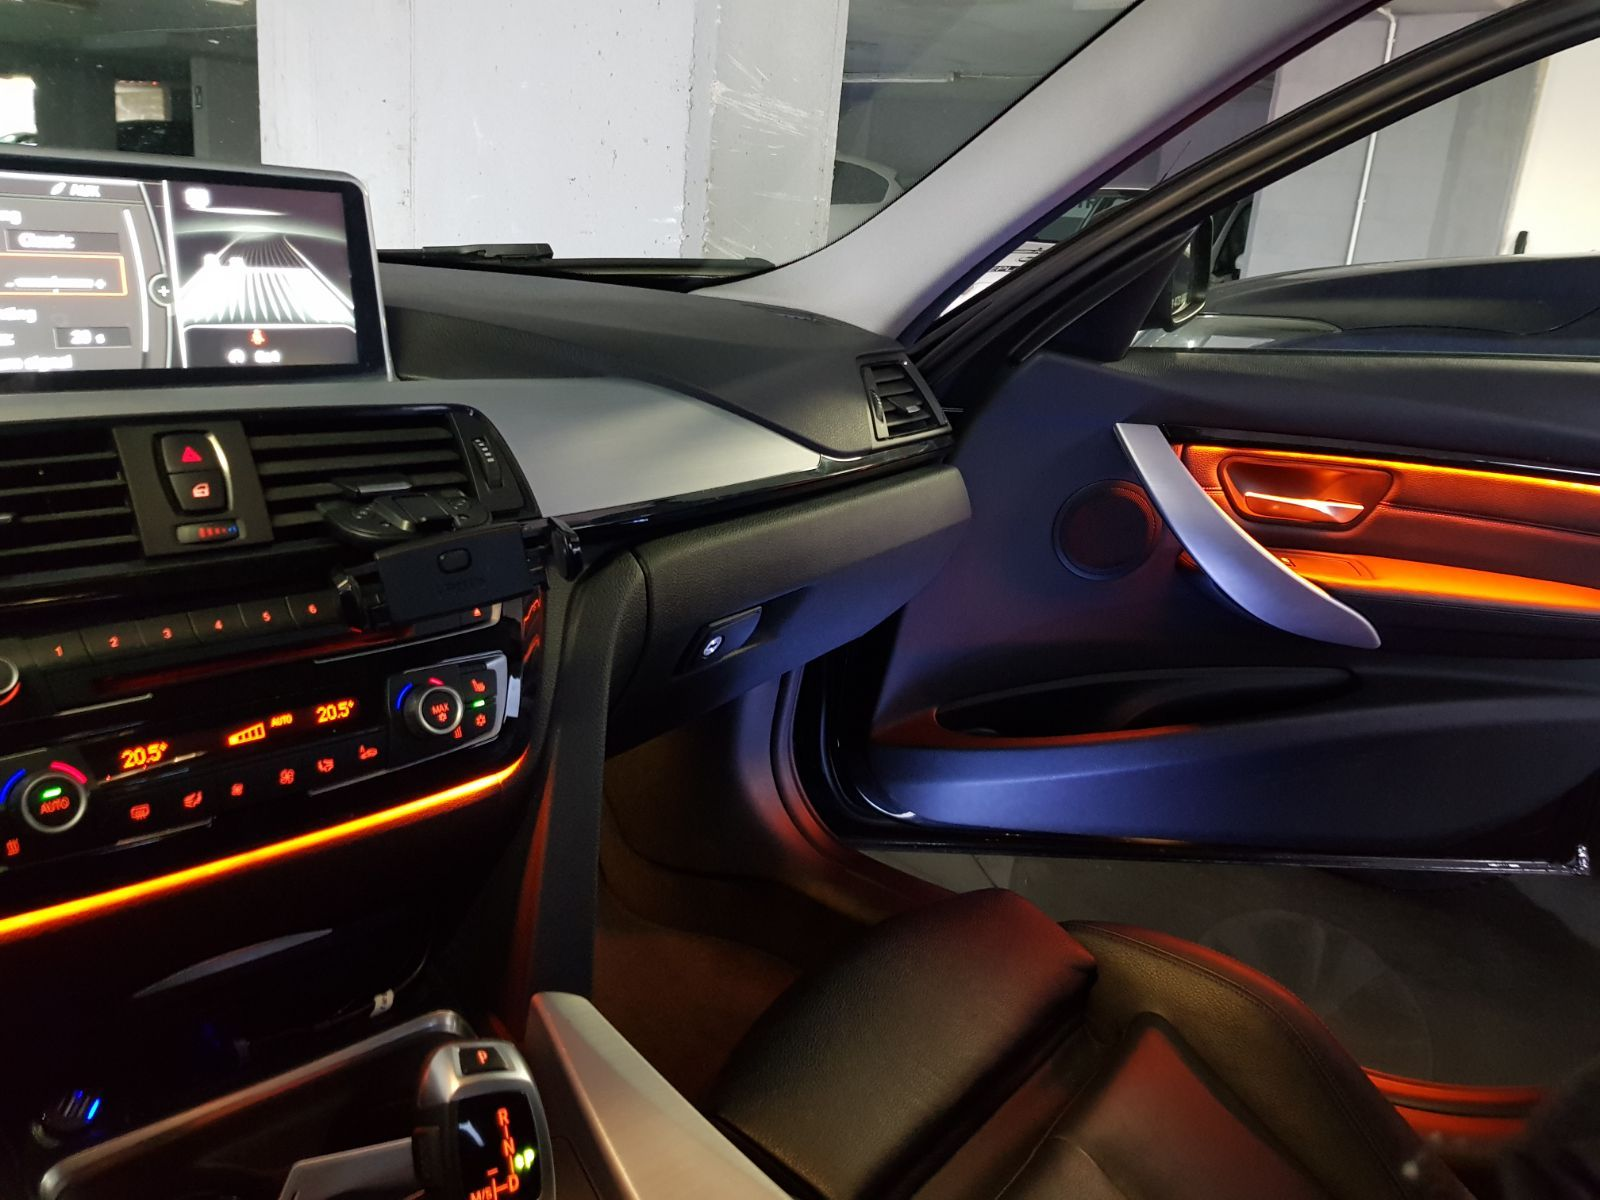 hight resolution of high quality after market bmw f30 interior door panel decorative trim led ambient lights lighting upgrade by retrofit kits